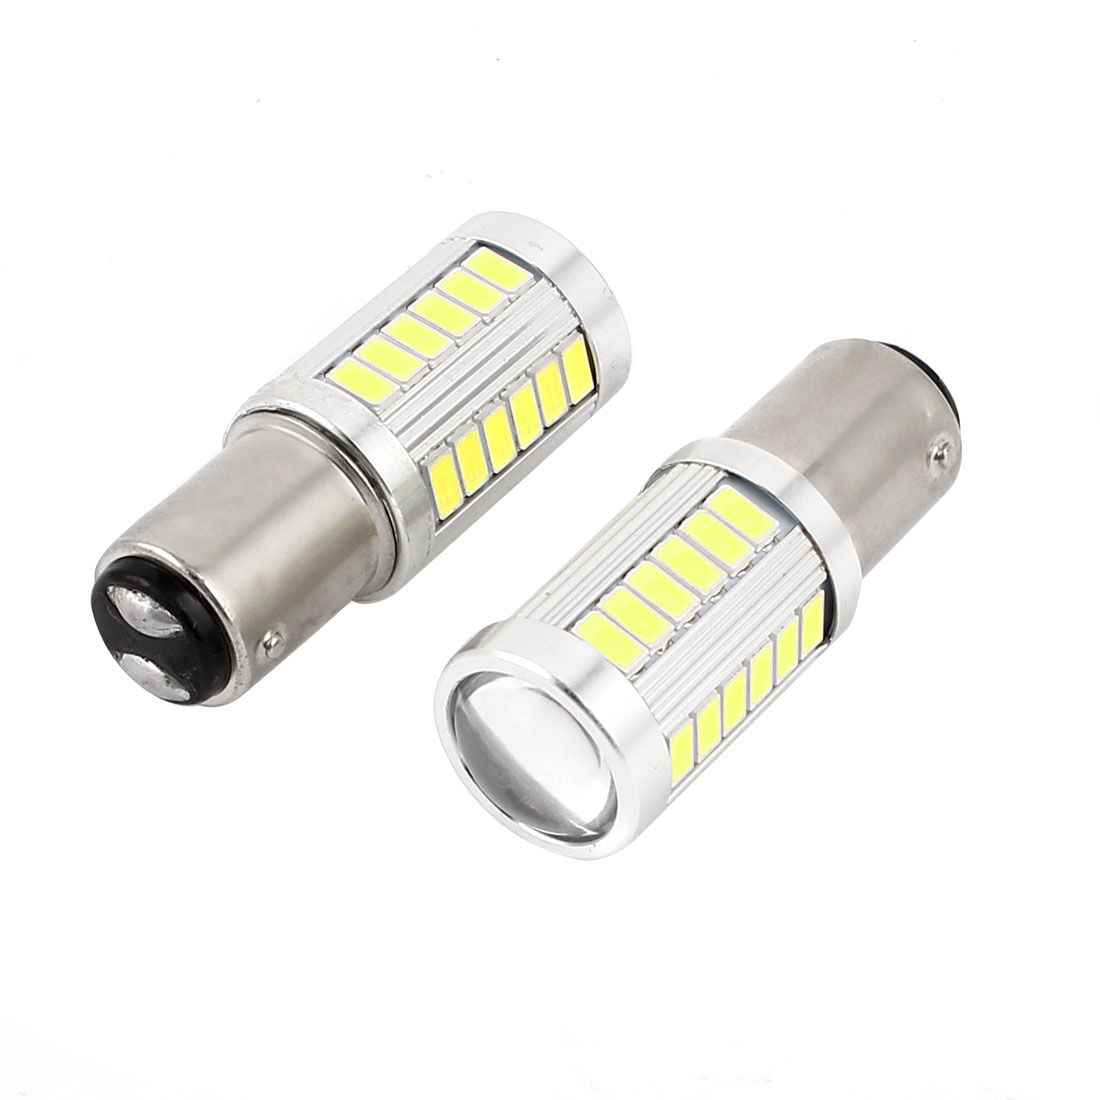 2 Pcs 1157 White 5630 SMD 33 LED Car Tail Turn Brake Light Signal Lamp Bulb